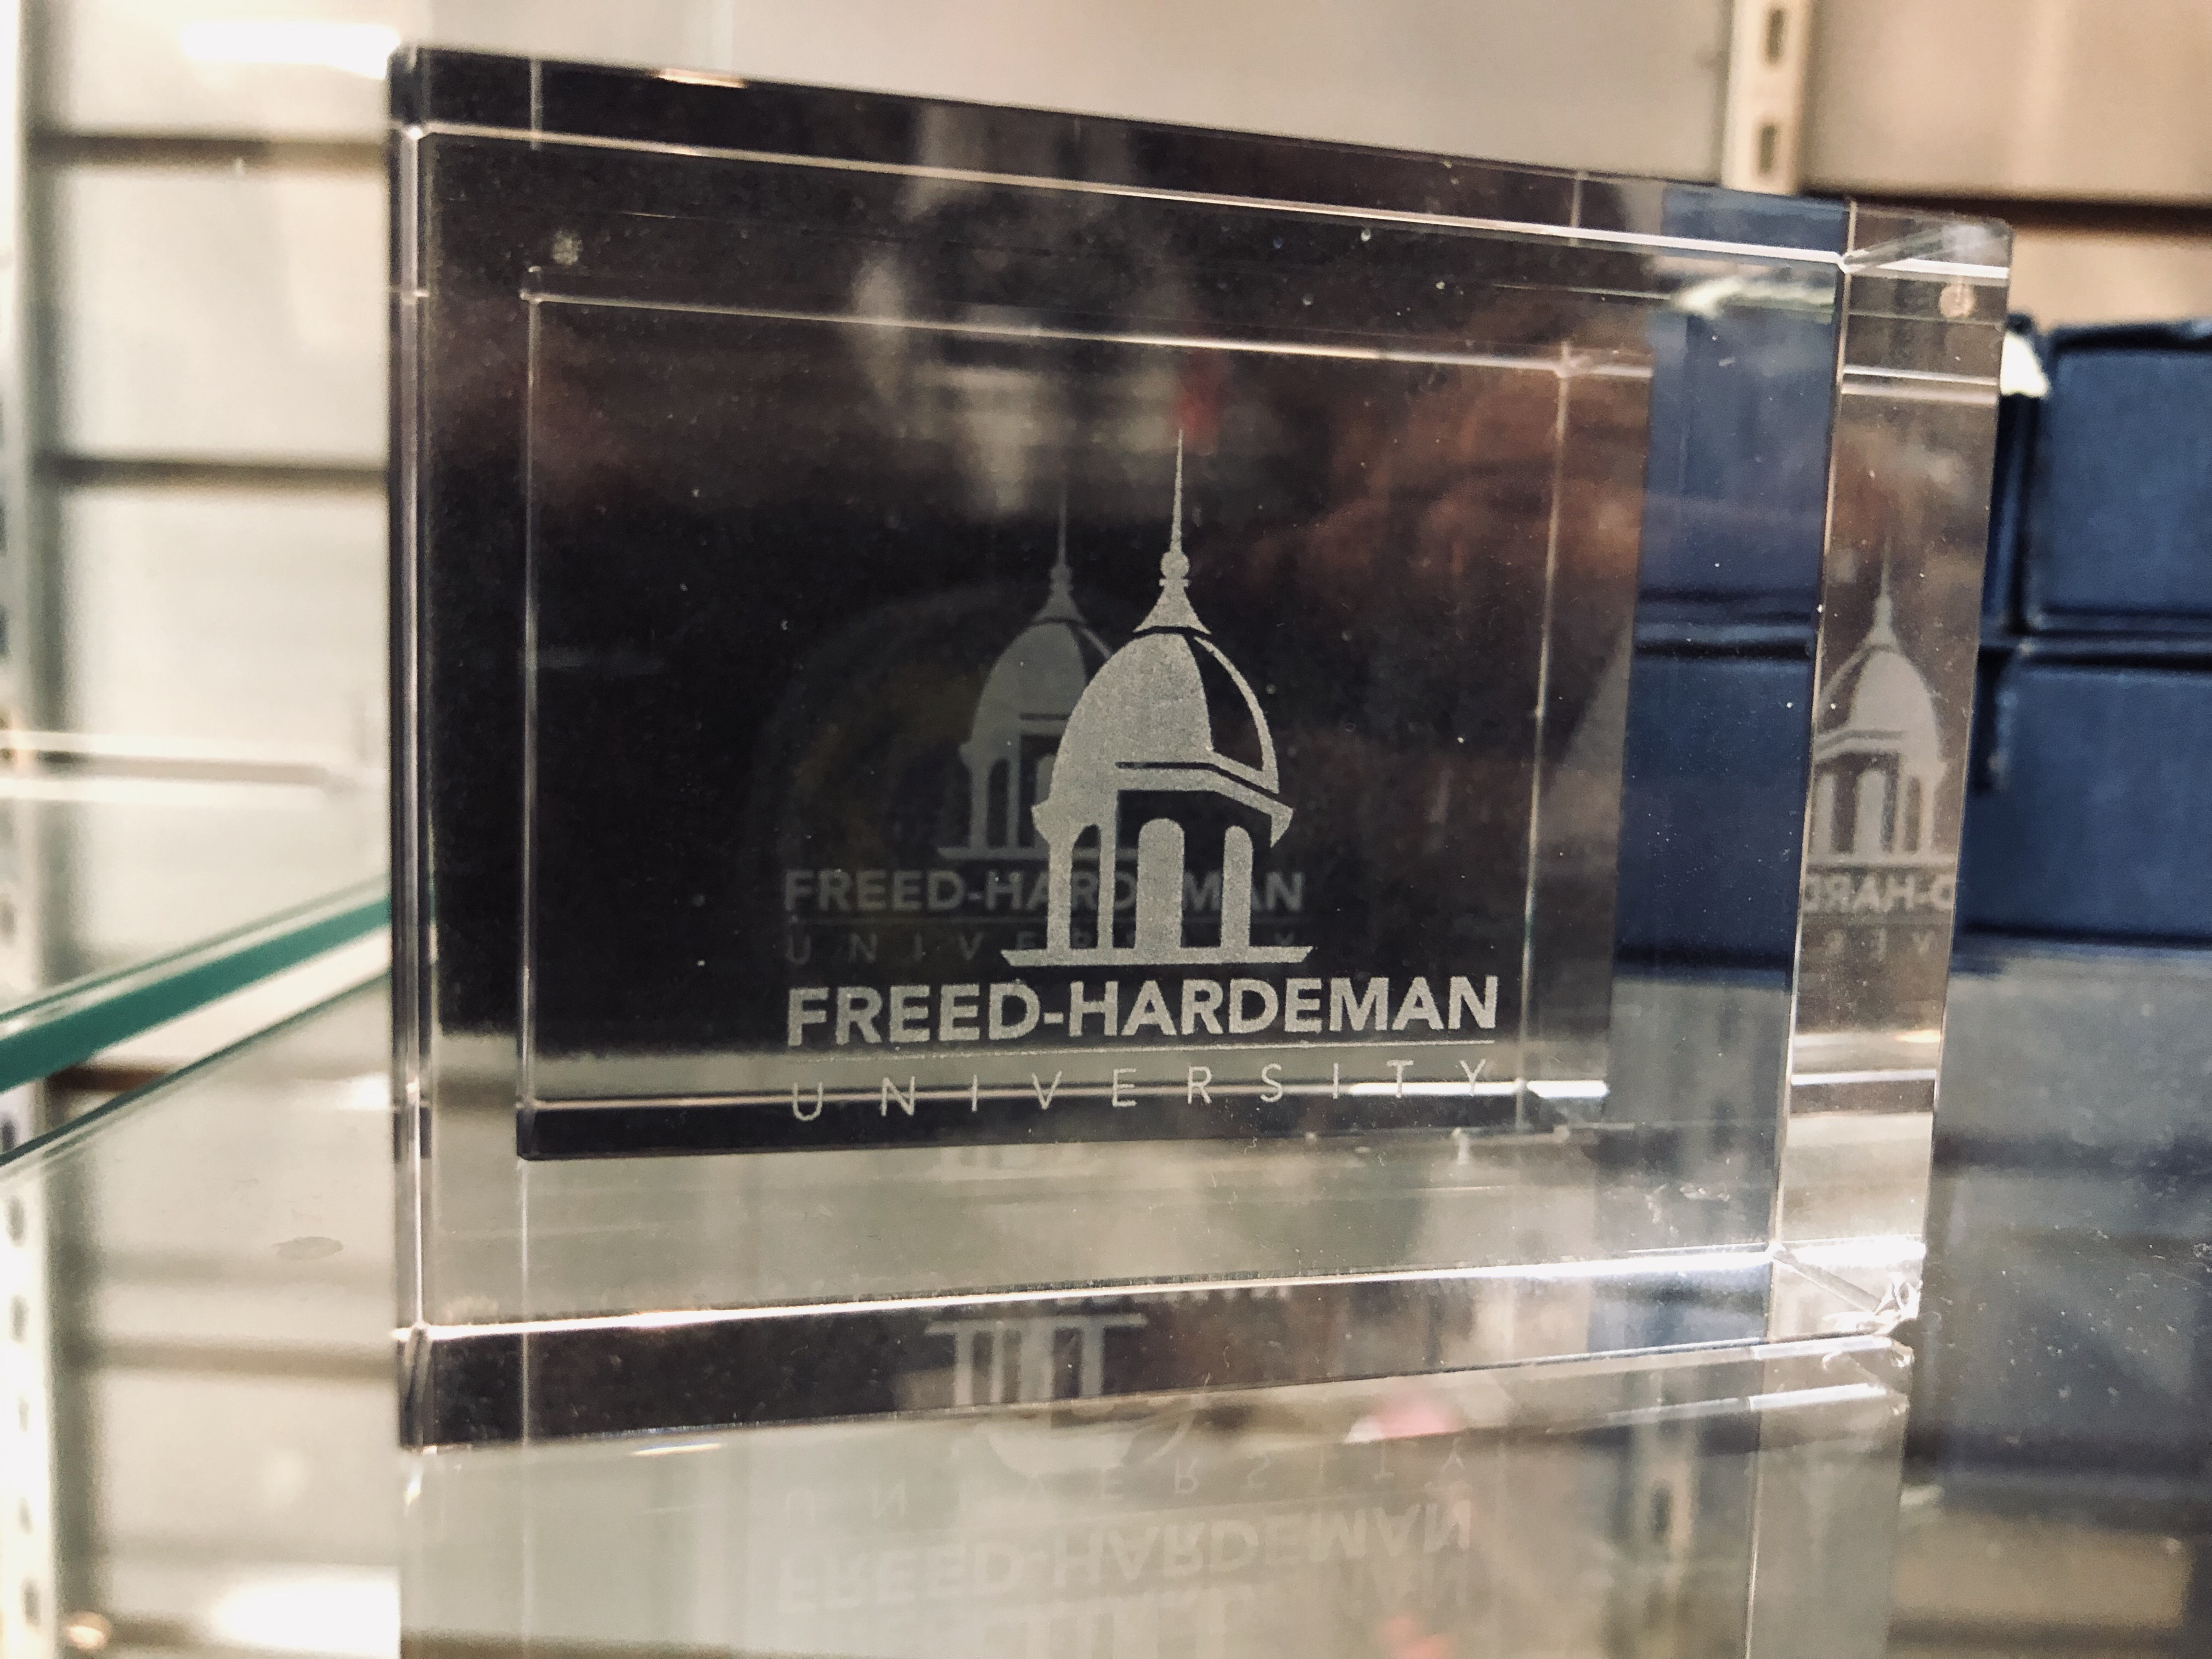 FHU Paperweight